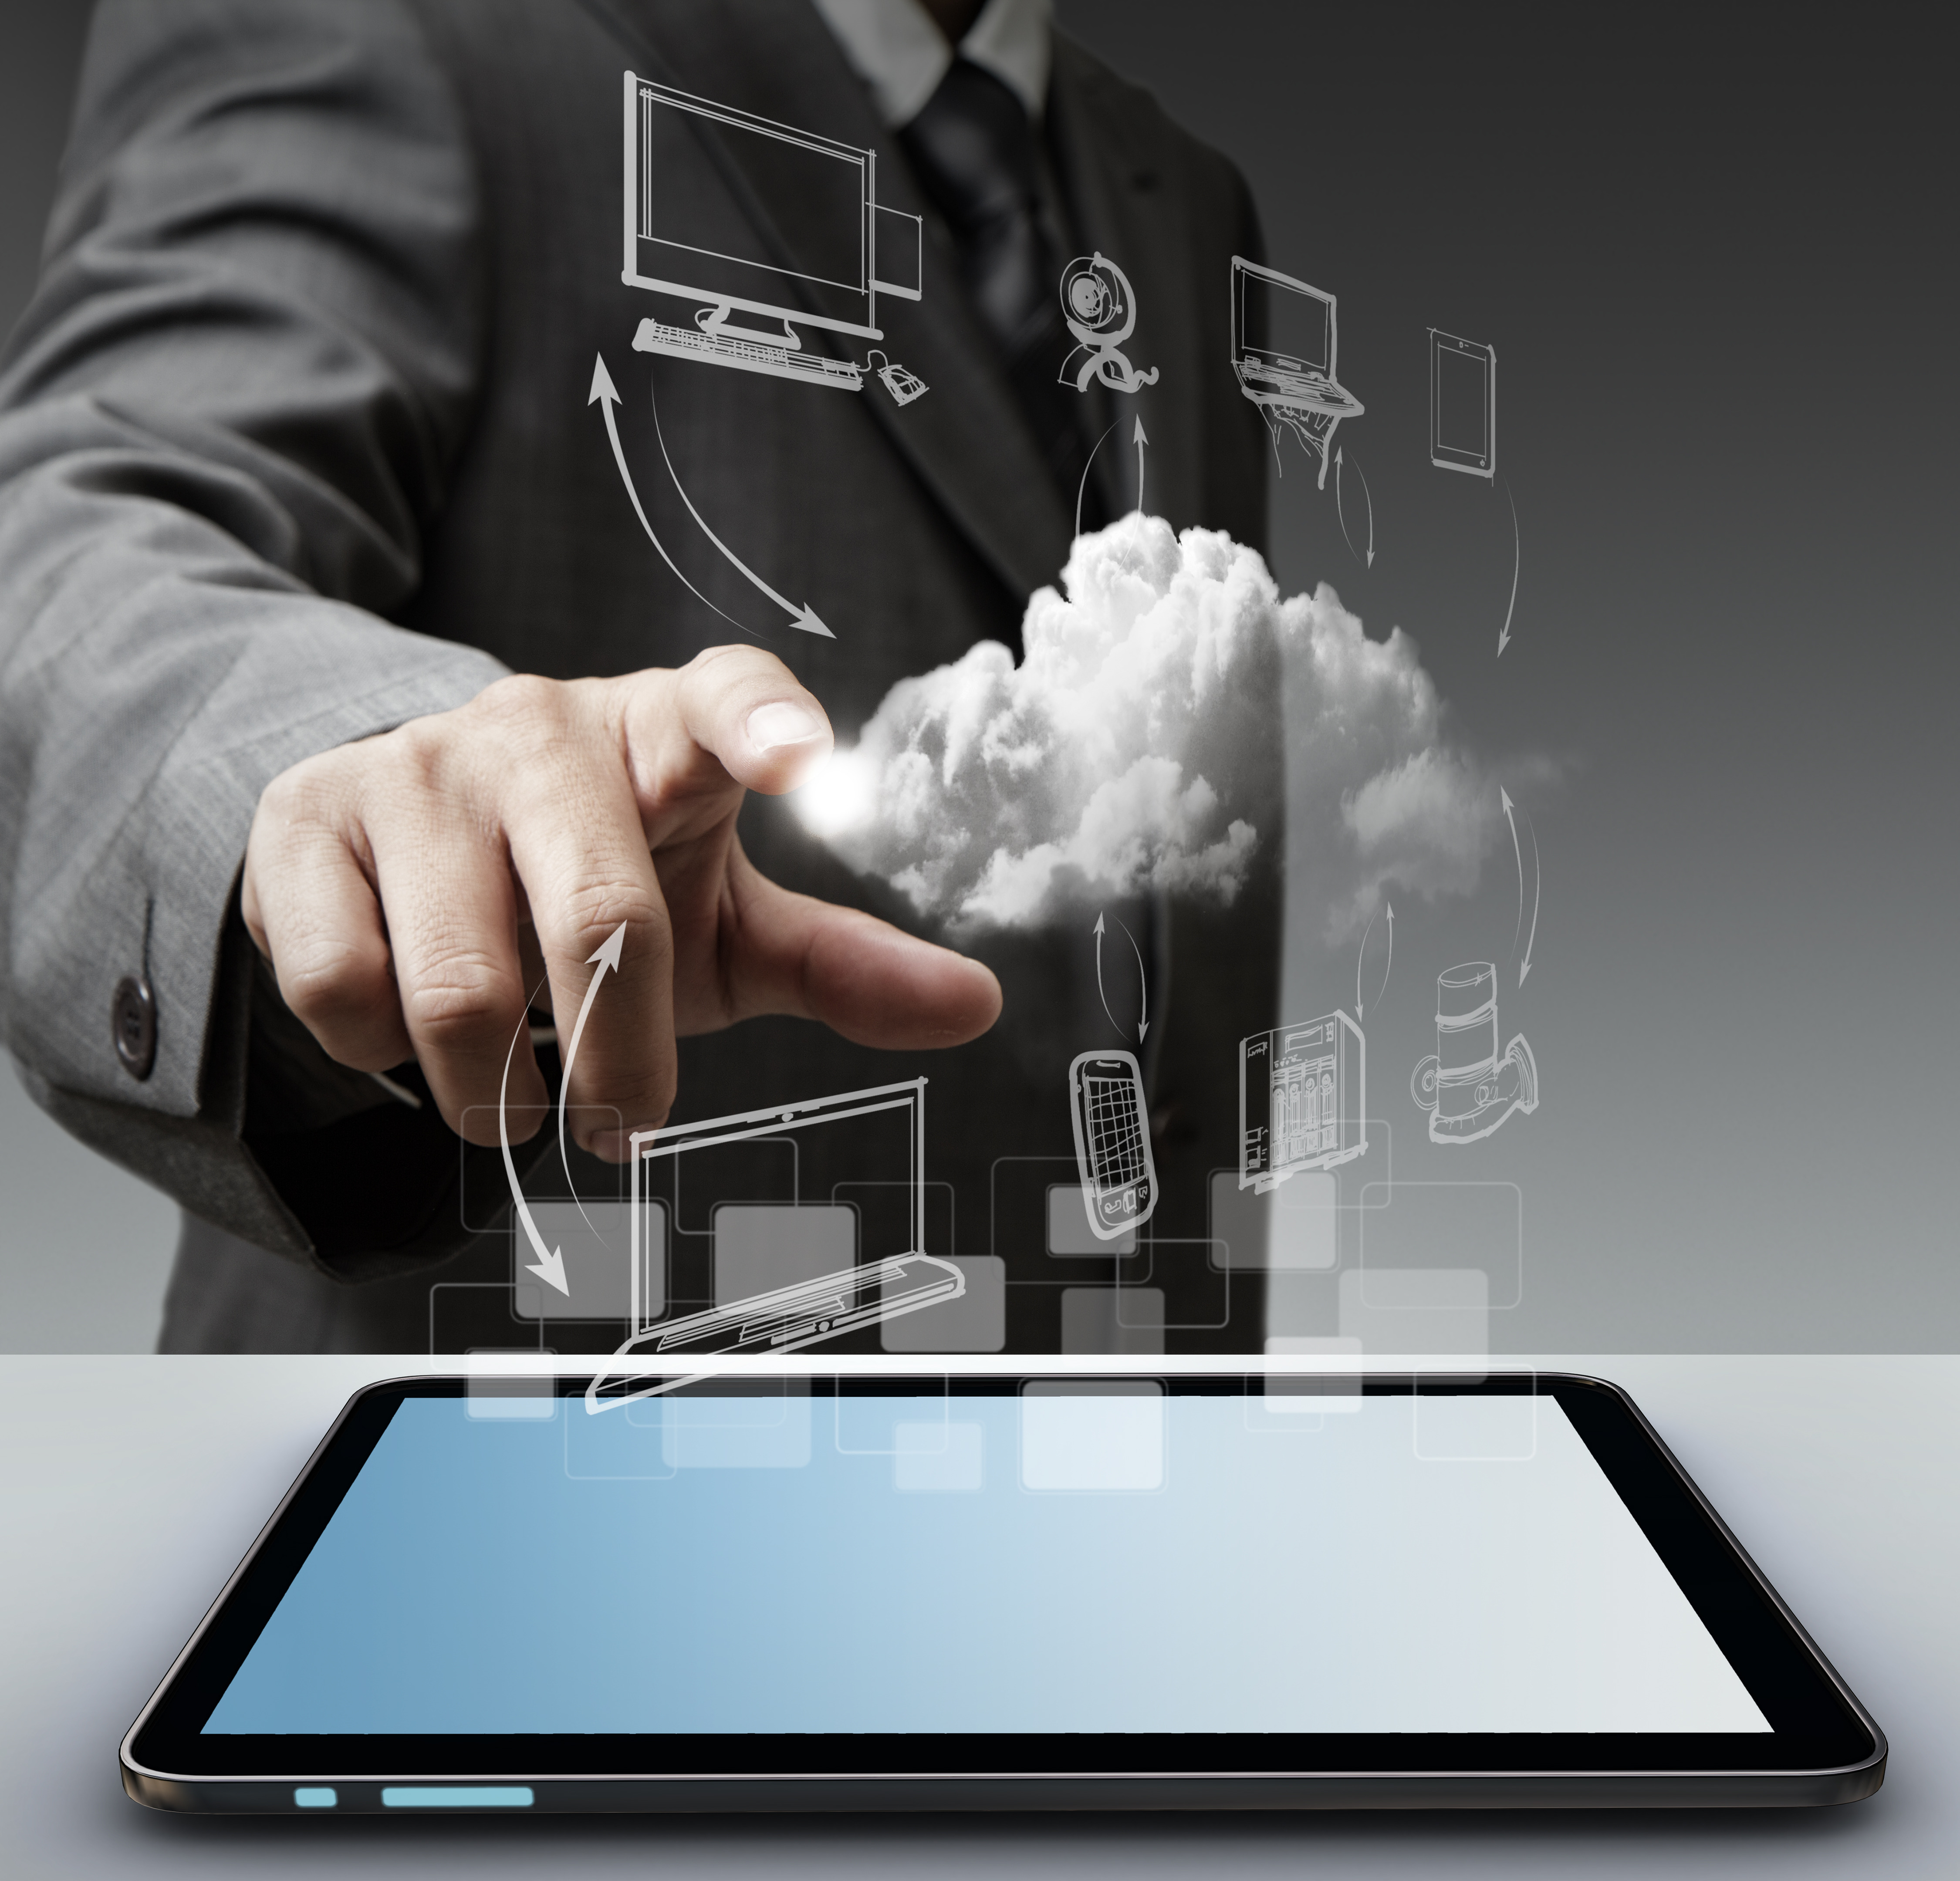 Top 5 Reasons for Adopting Cloud Computing  - Image 1